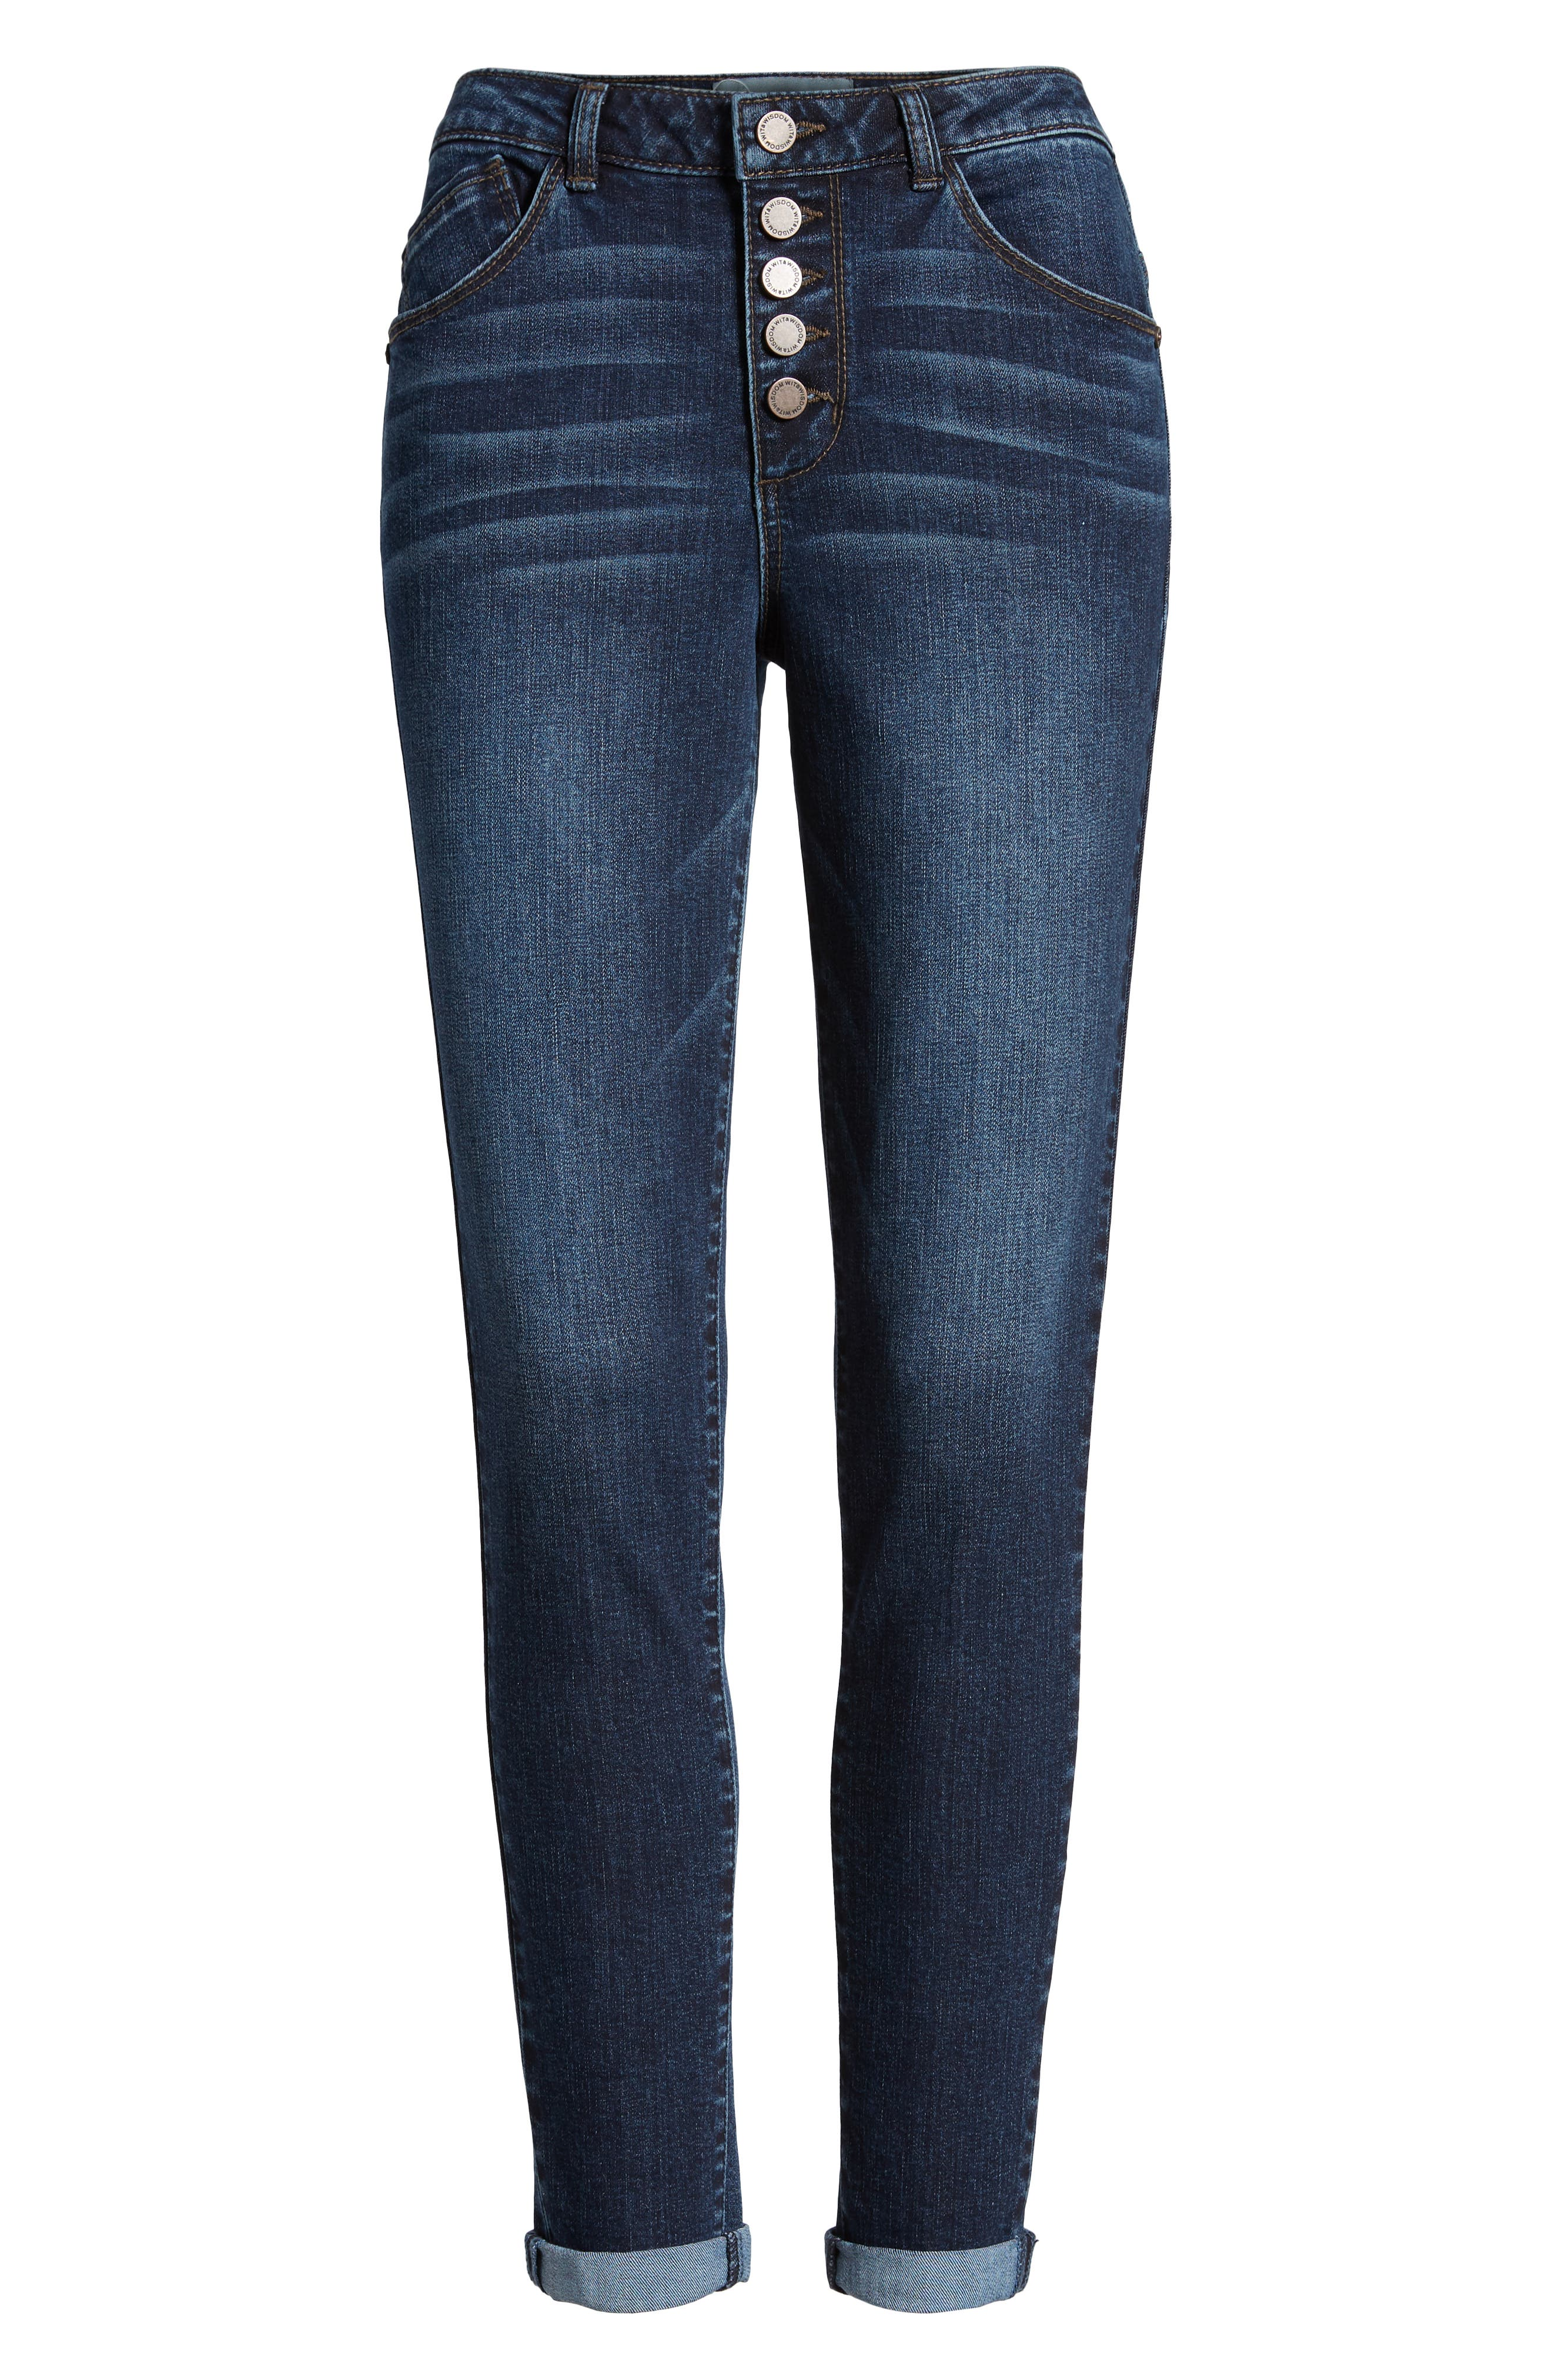 High Waist Button Fly Skinny Ankle Jeans,                             Alternate thumbnail 7, color,                             420